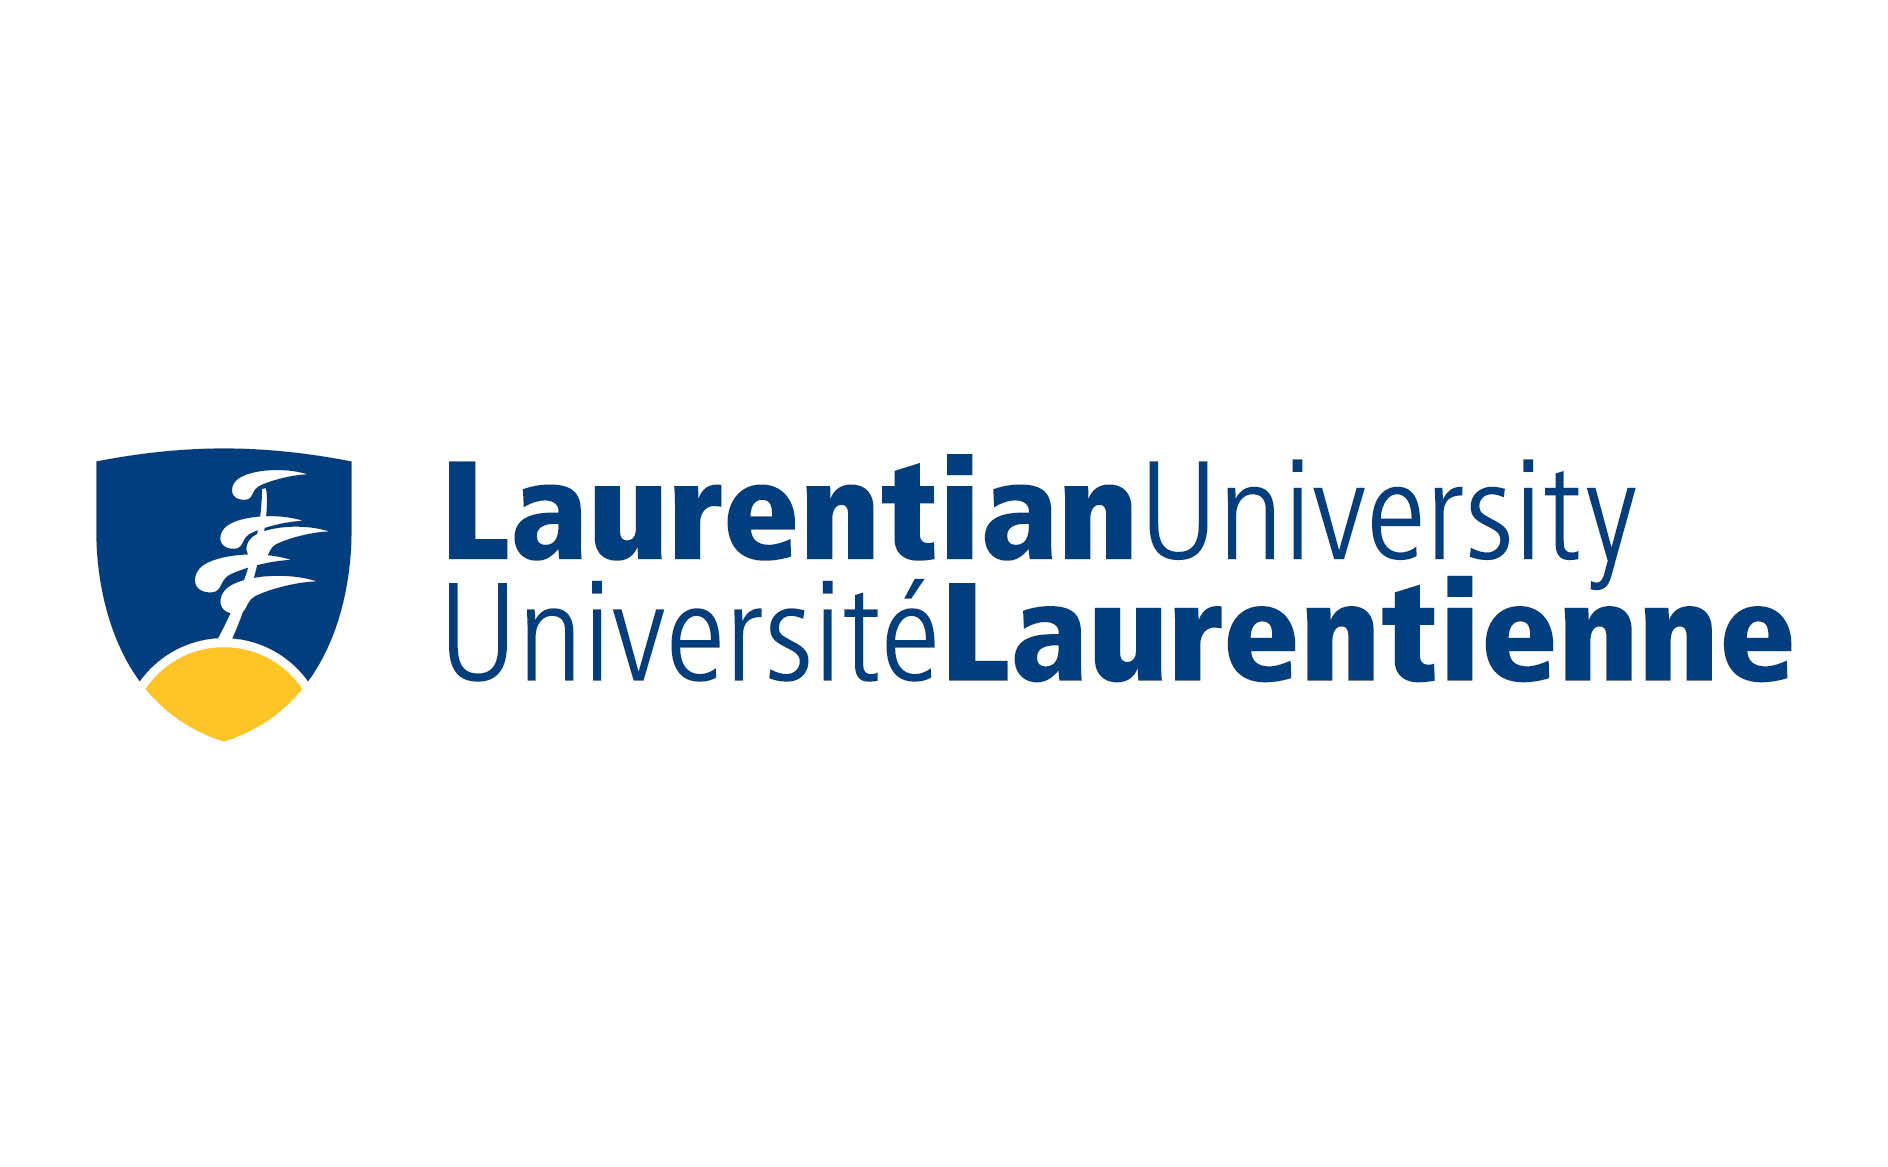 Image of Laurentian University's logo.